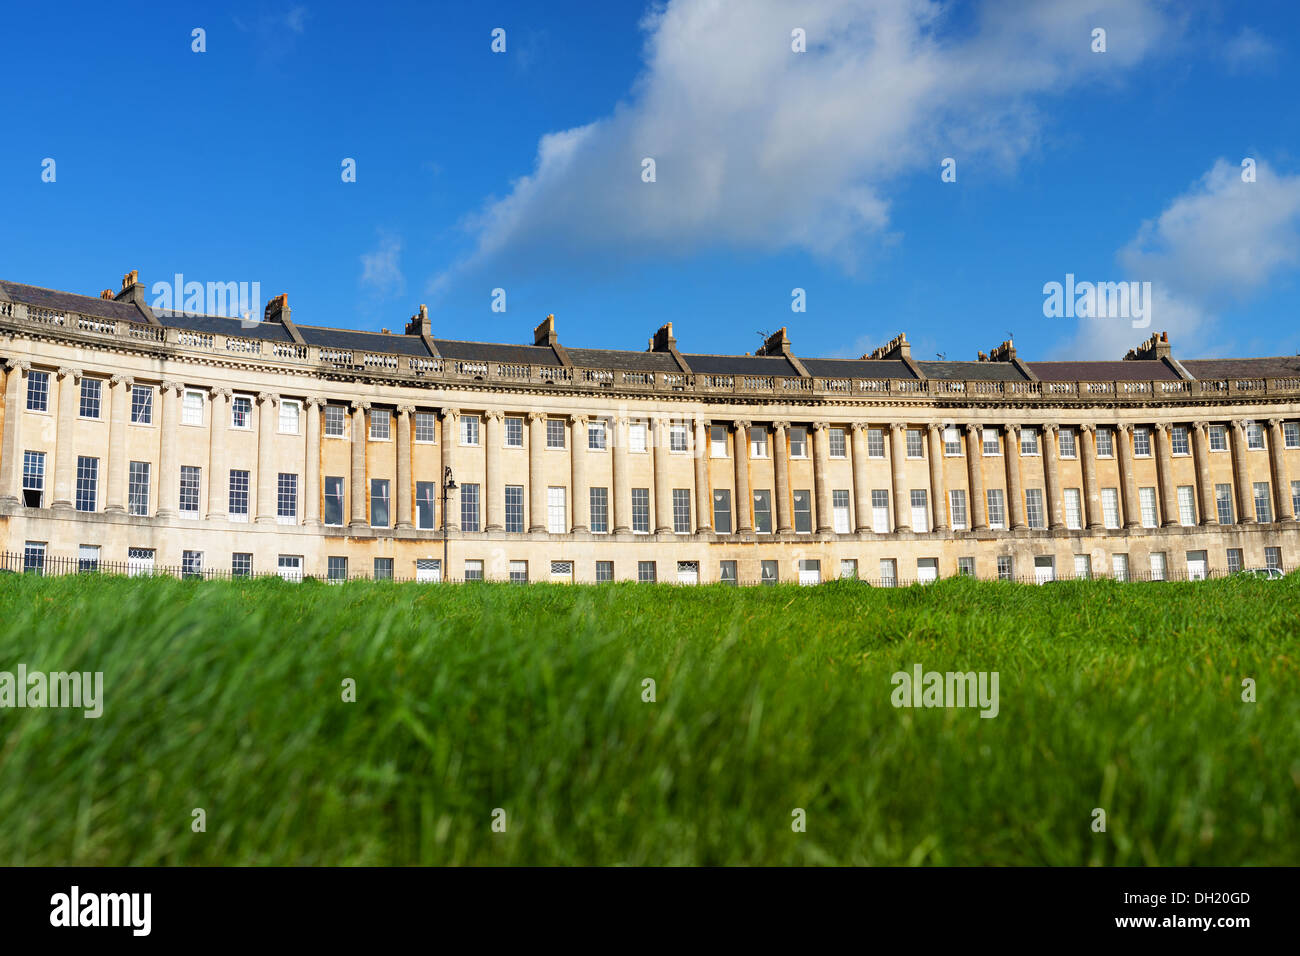 Low angle view of the Royal Crescent in Bath, Somerset with lush green lawn in the foreground. - Stock Image